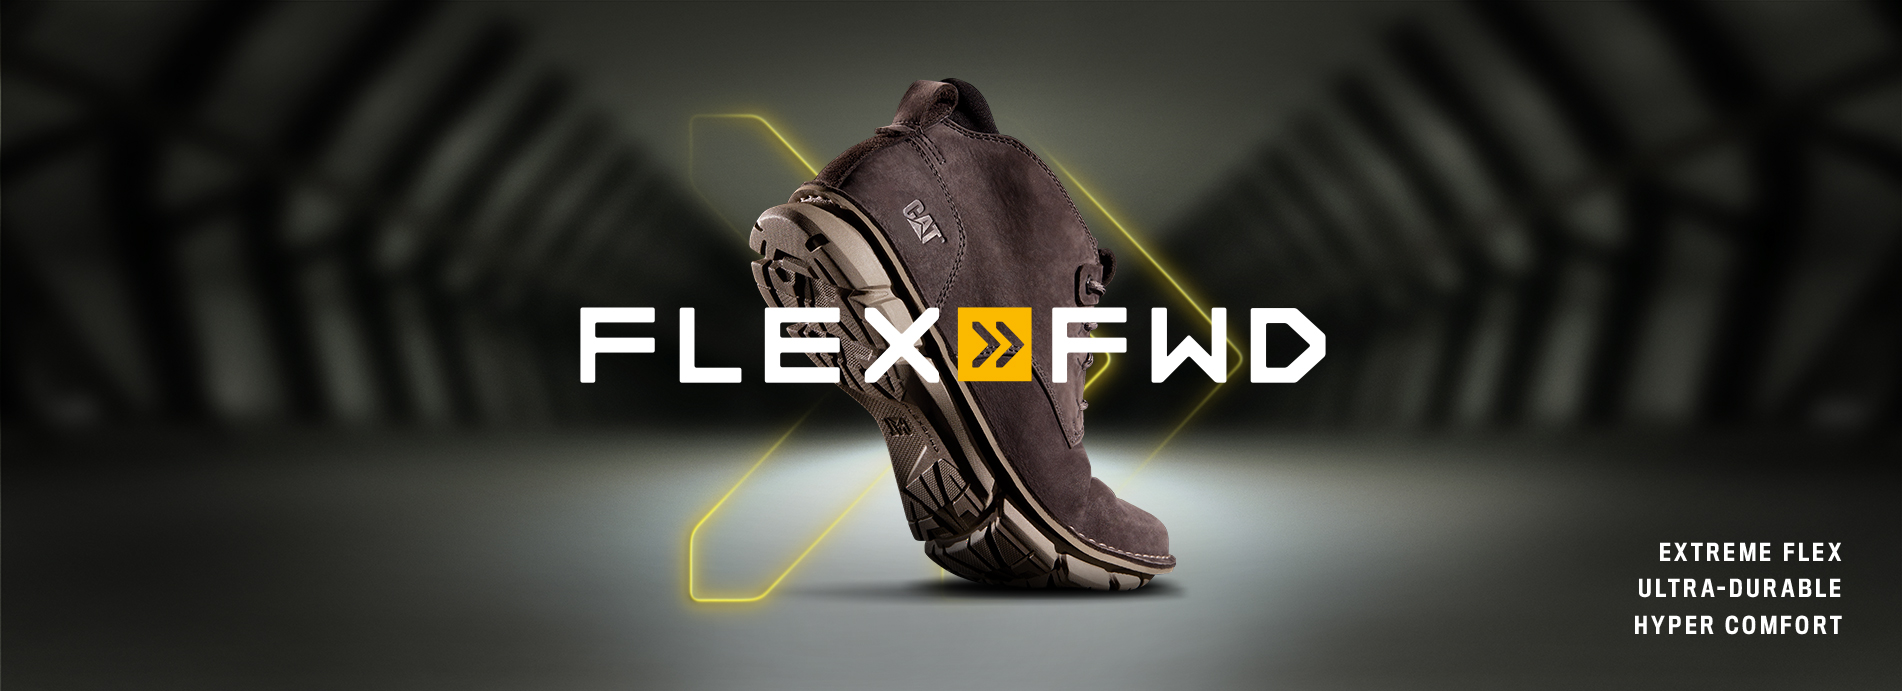 FLEXFWD Technology